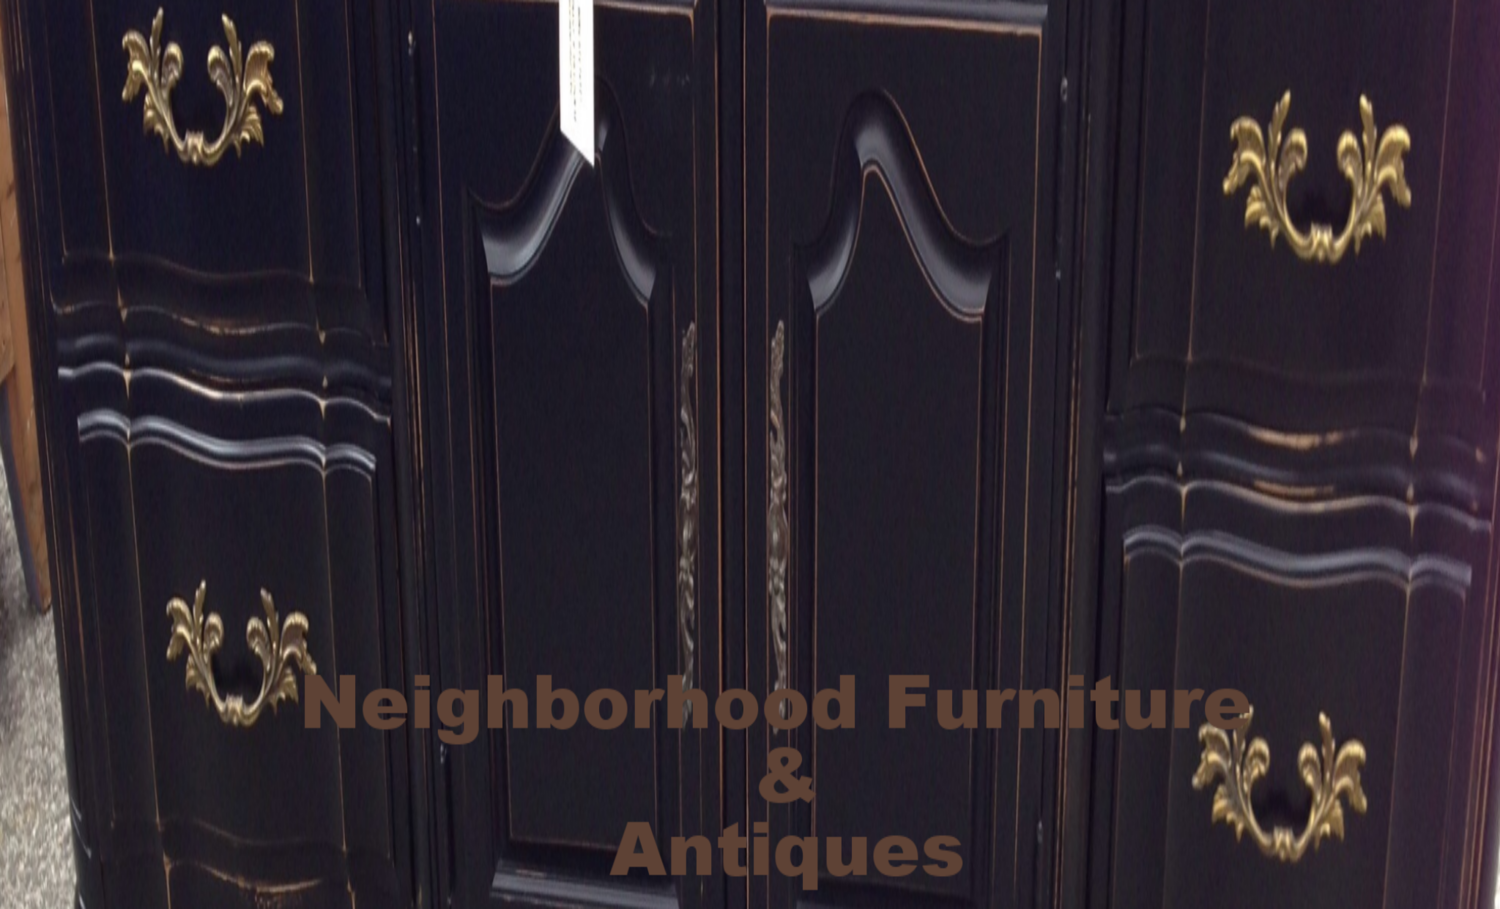 Neighborhood Furniture & Antiques